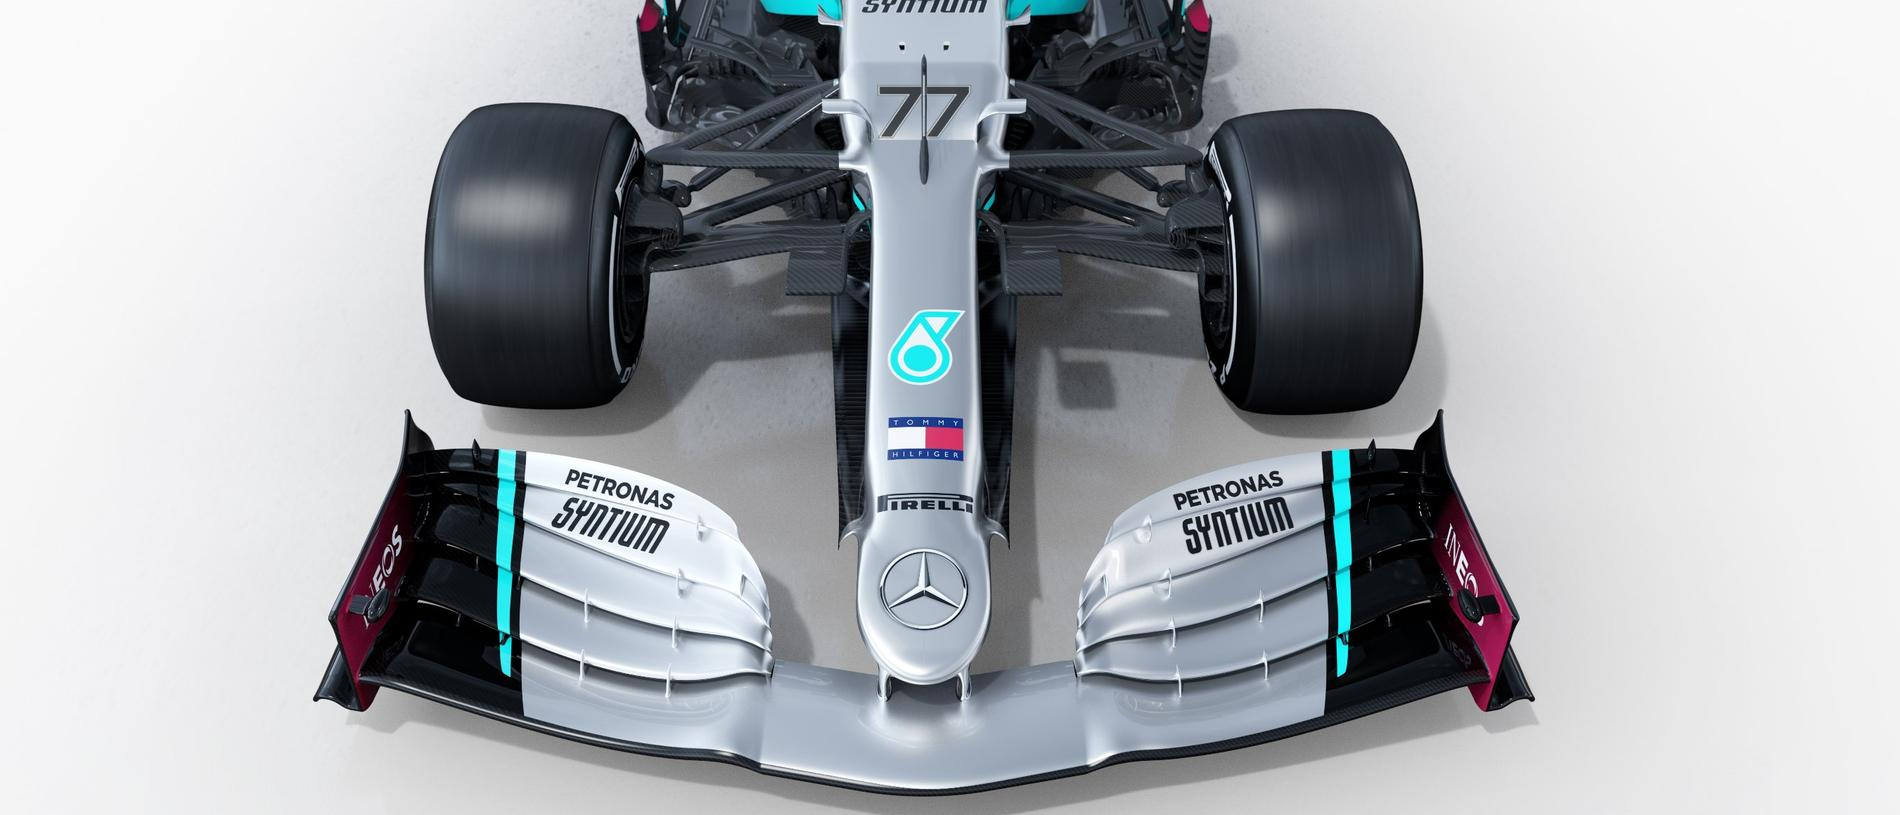 The front view of the 2020 Mercedes.